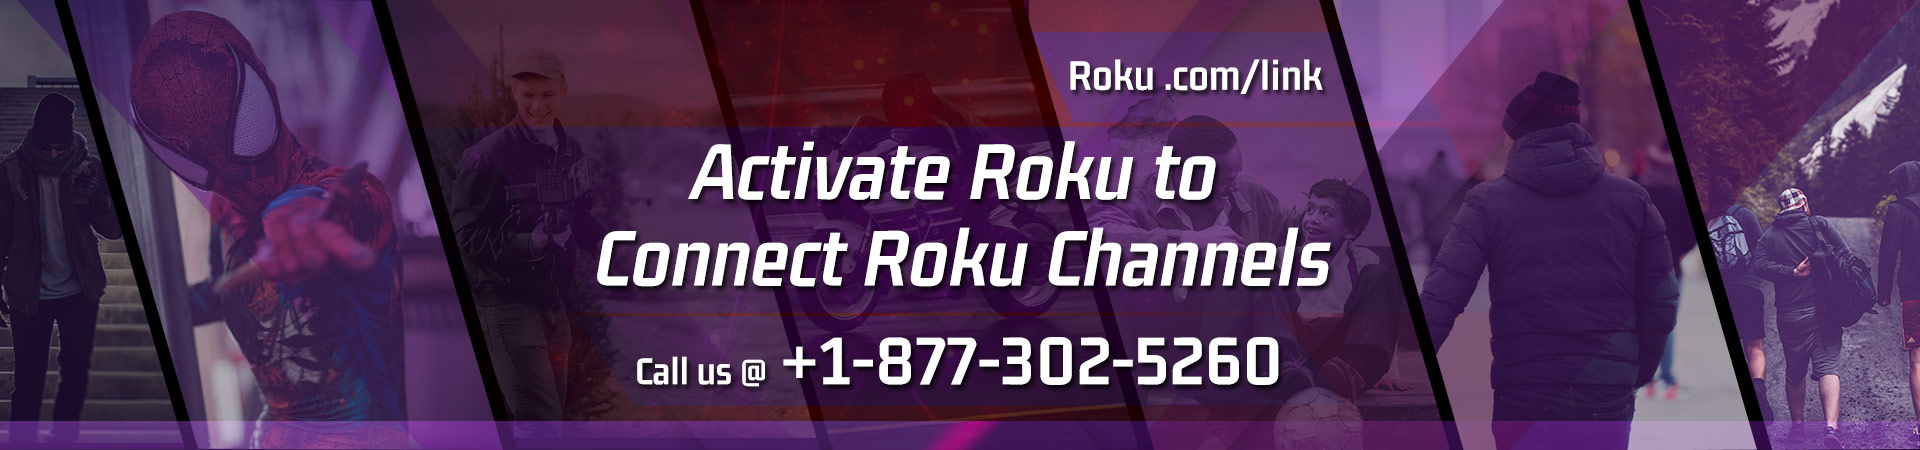 How to activate Roku account?